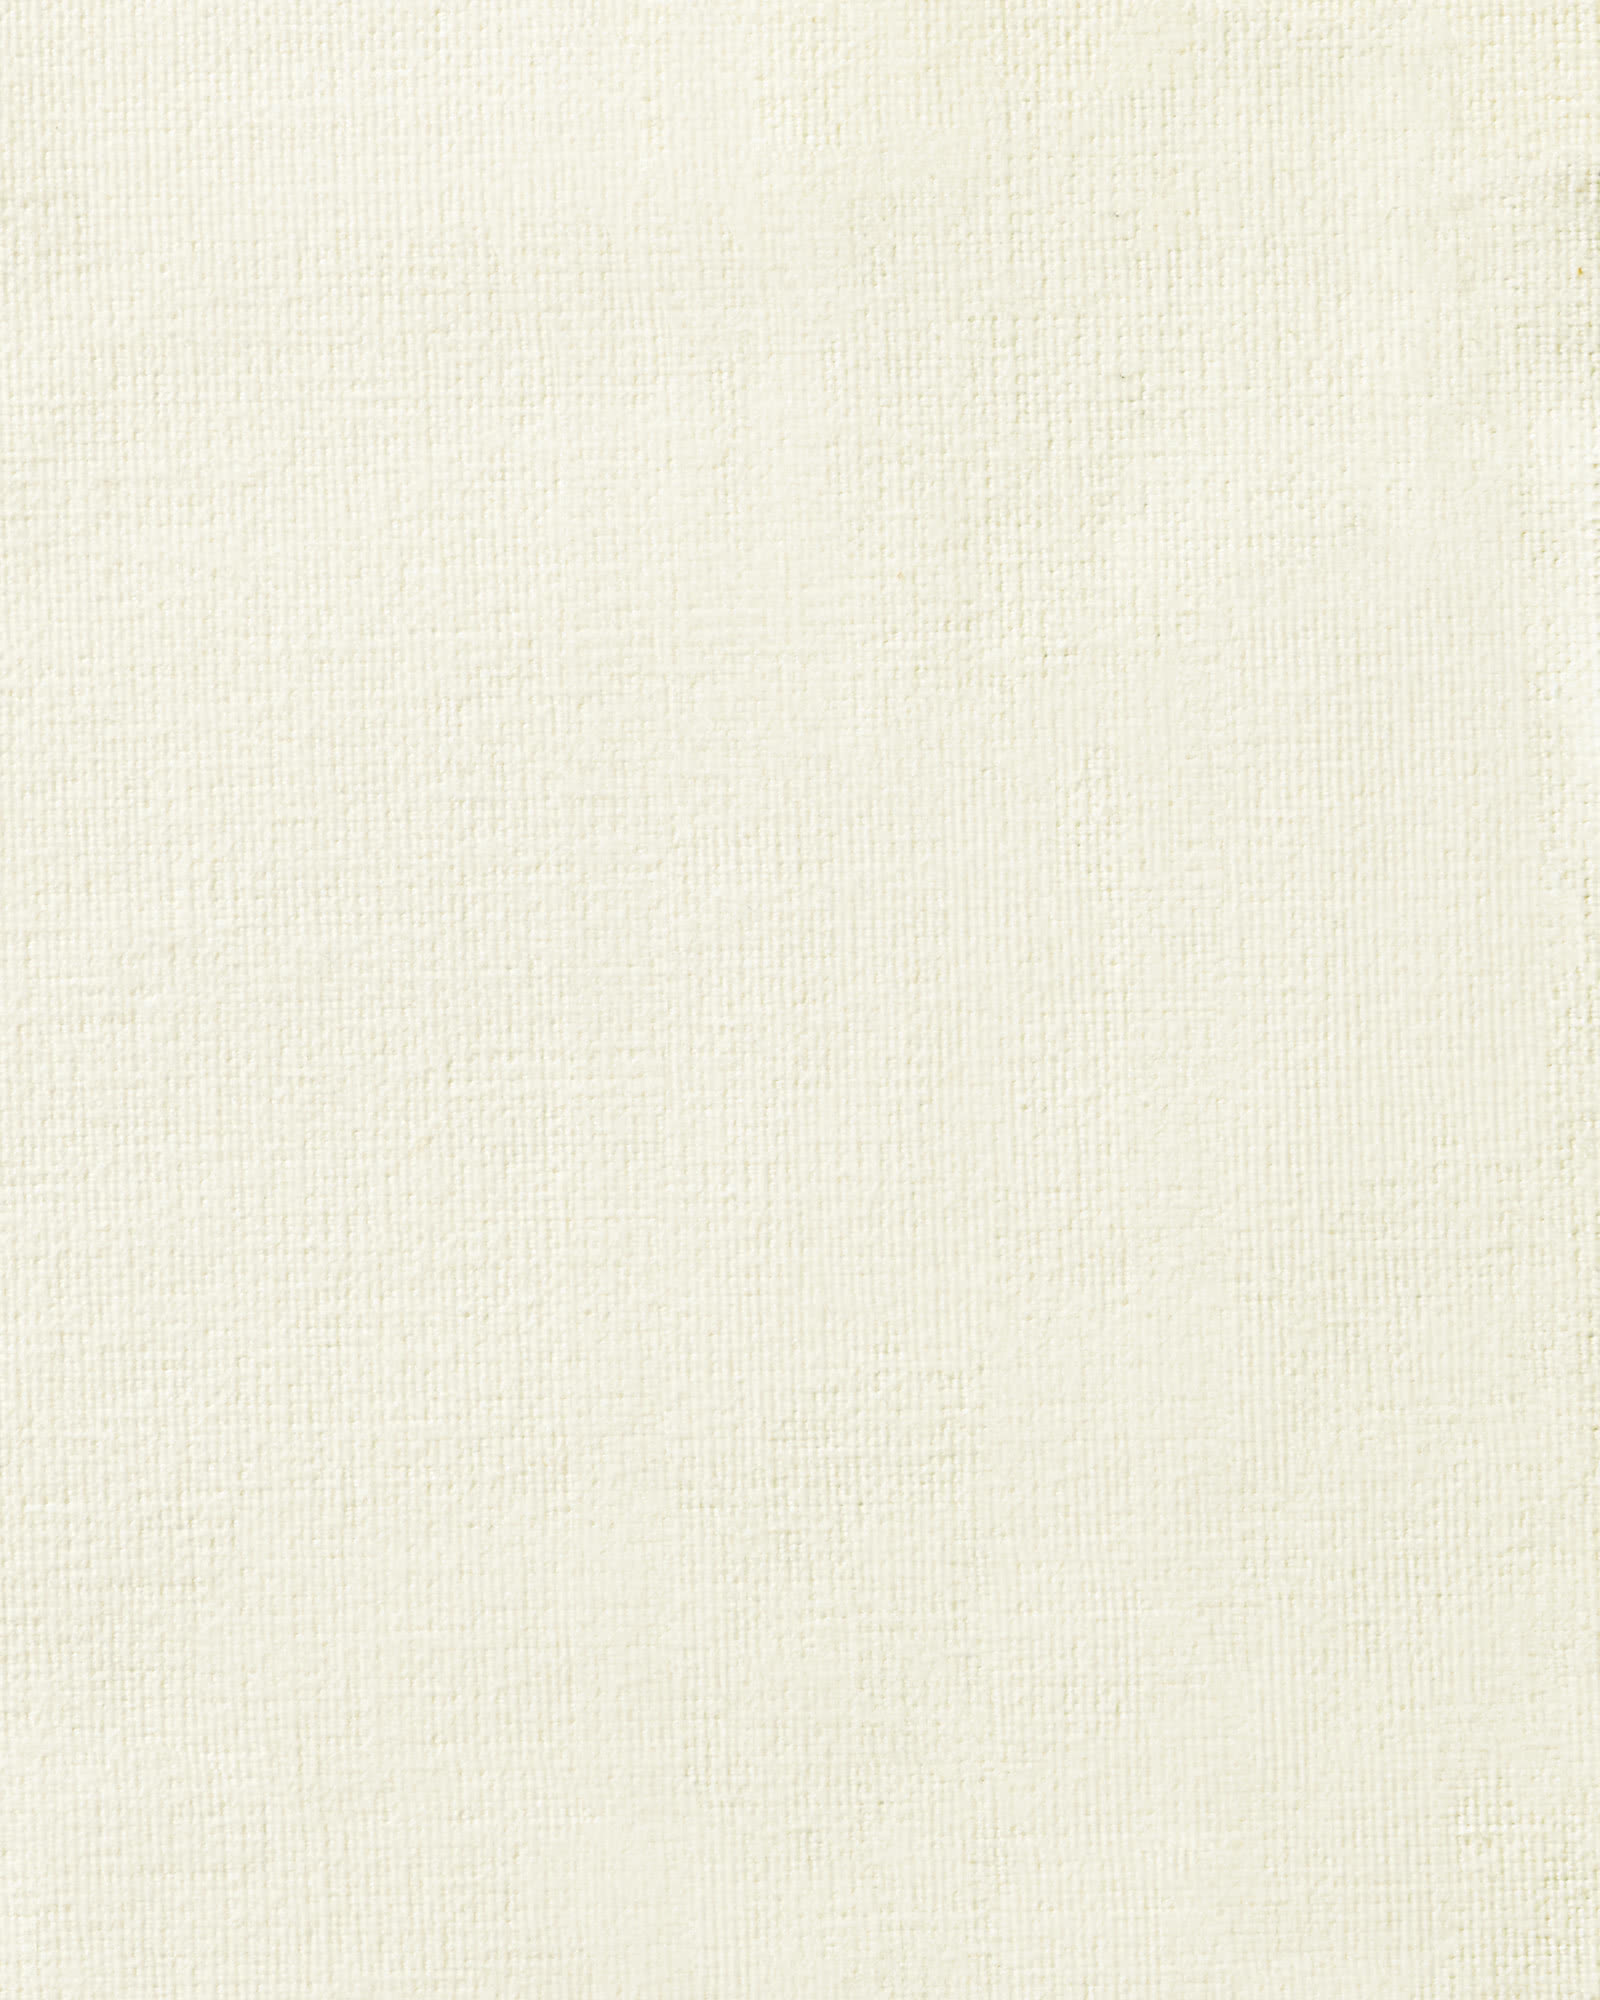 Brushed Cotton Canvas - Sugar Cane